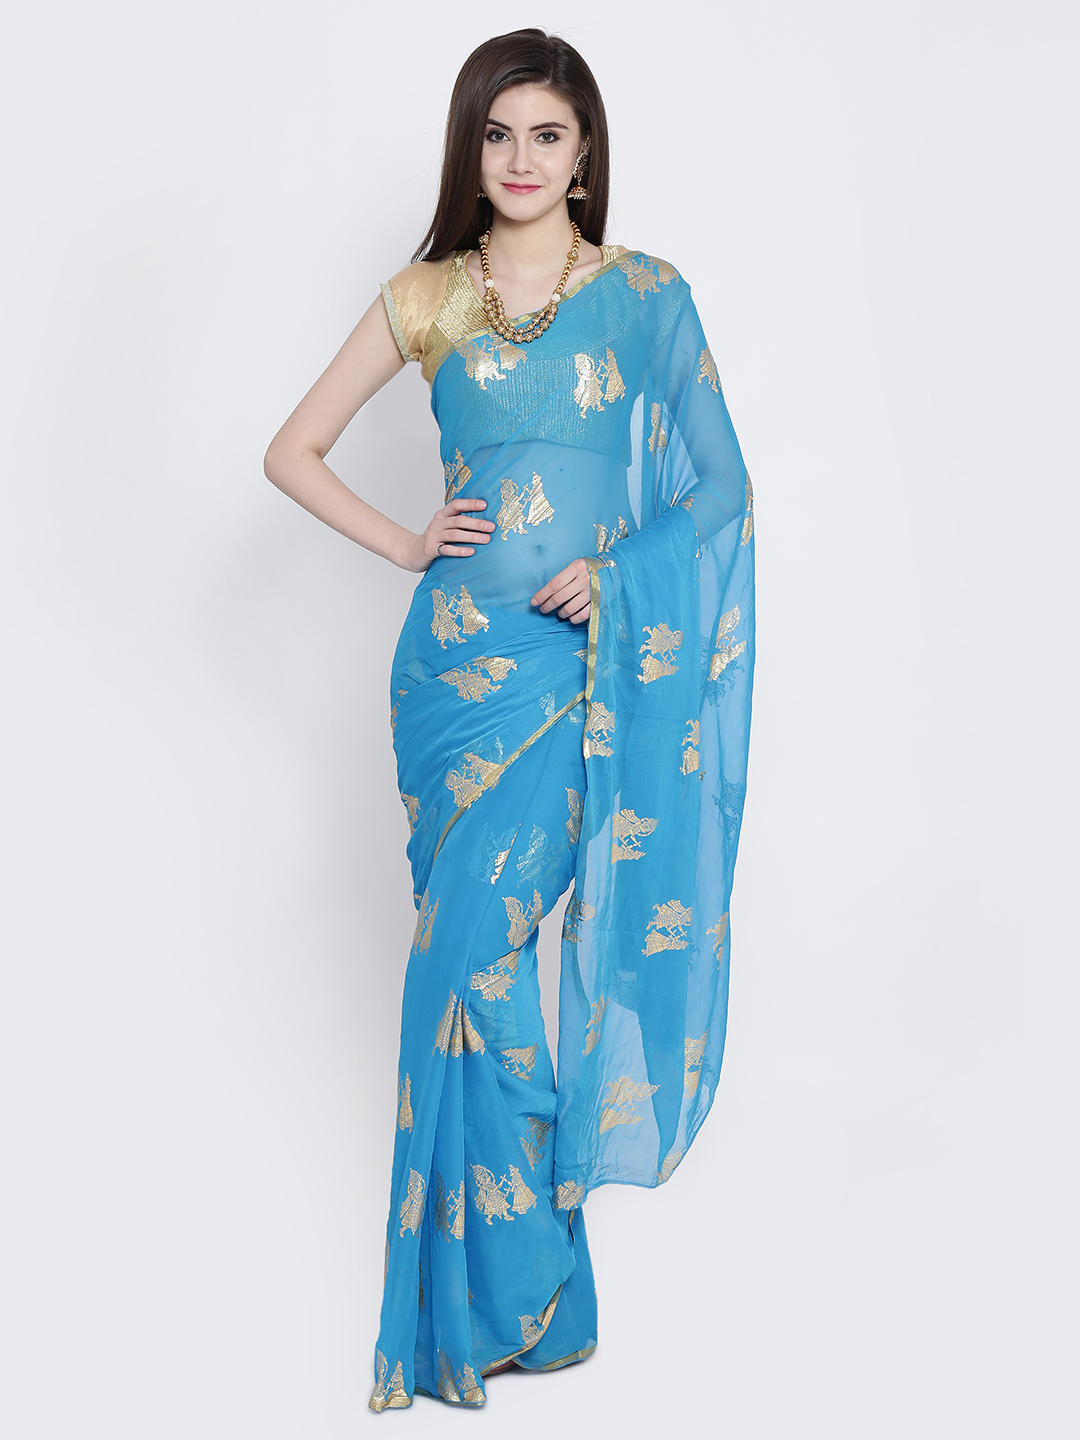 5-sarees-for-farewell-Blue-Printed-Poly-Georgette-Saree